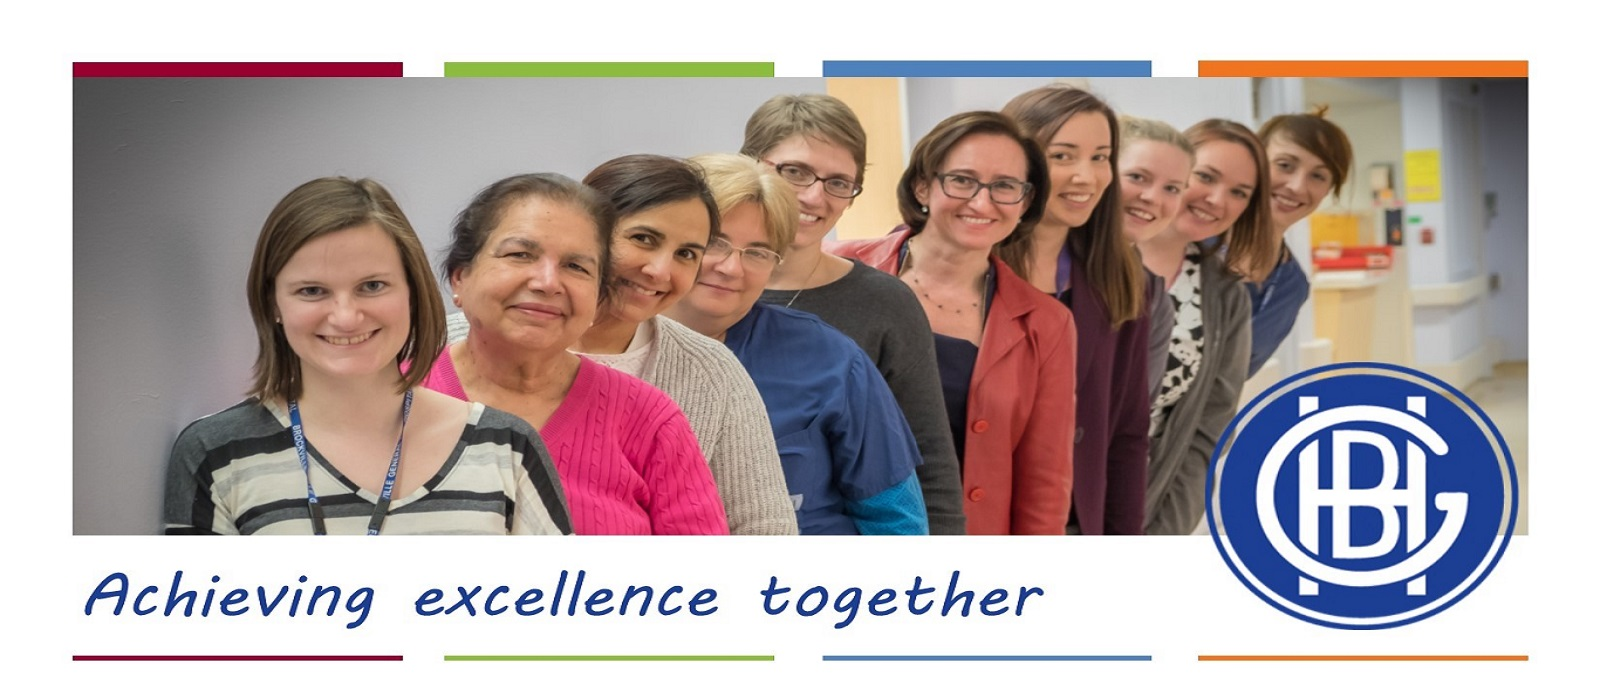 Achieving excellence together